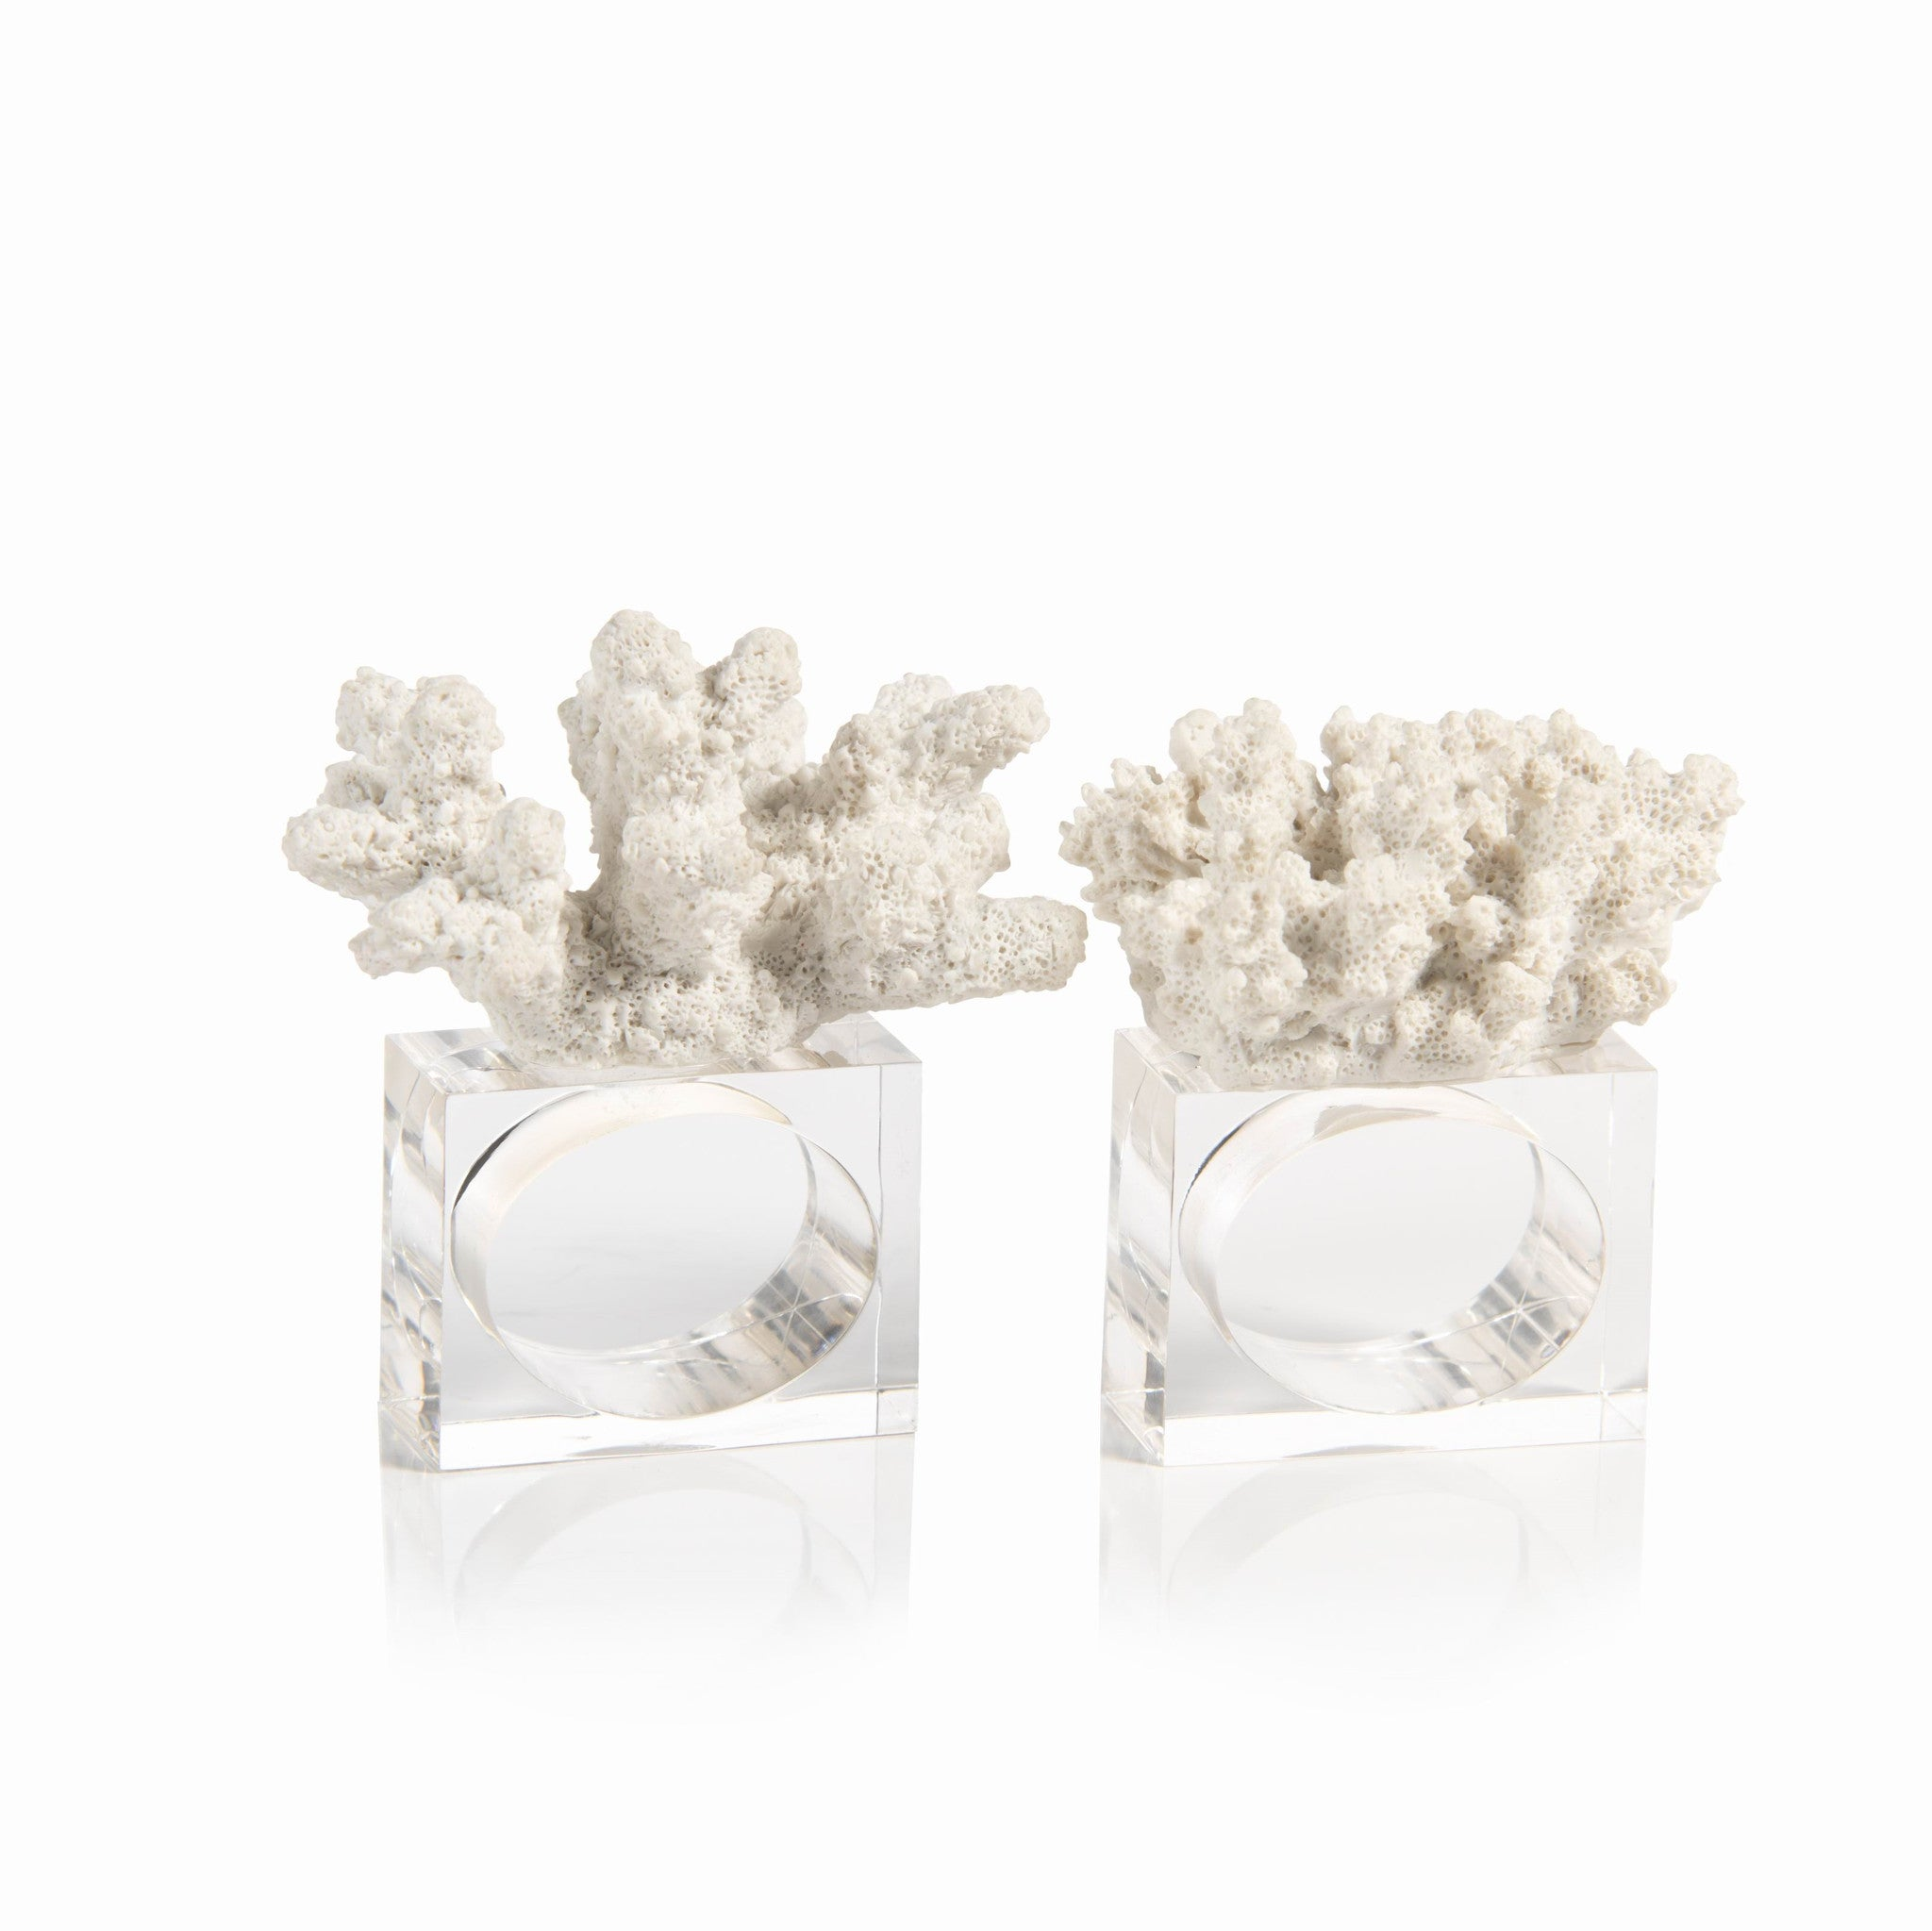 Coral Napkin Rings - Set of 6 - CARLYLE AVENUE